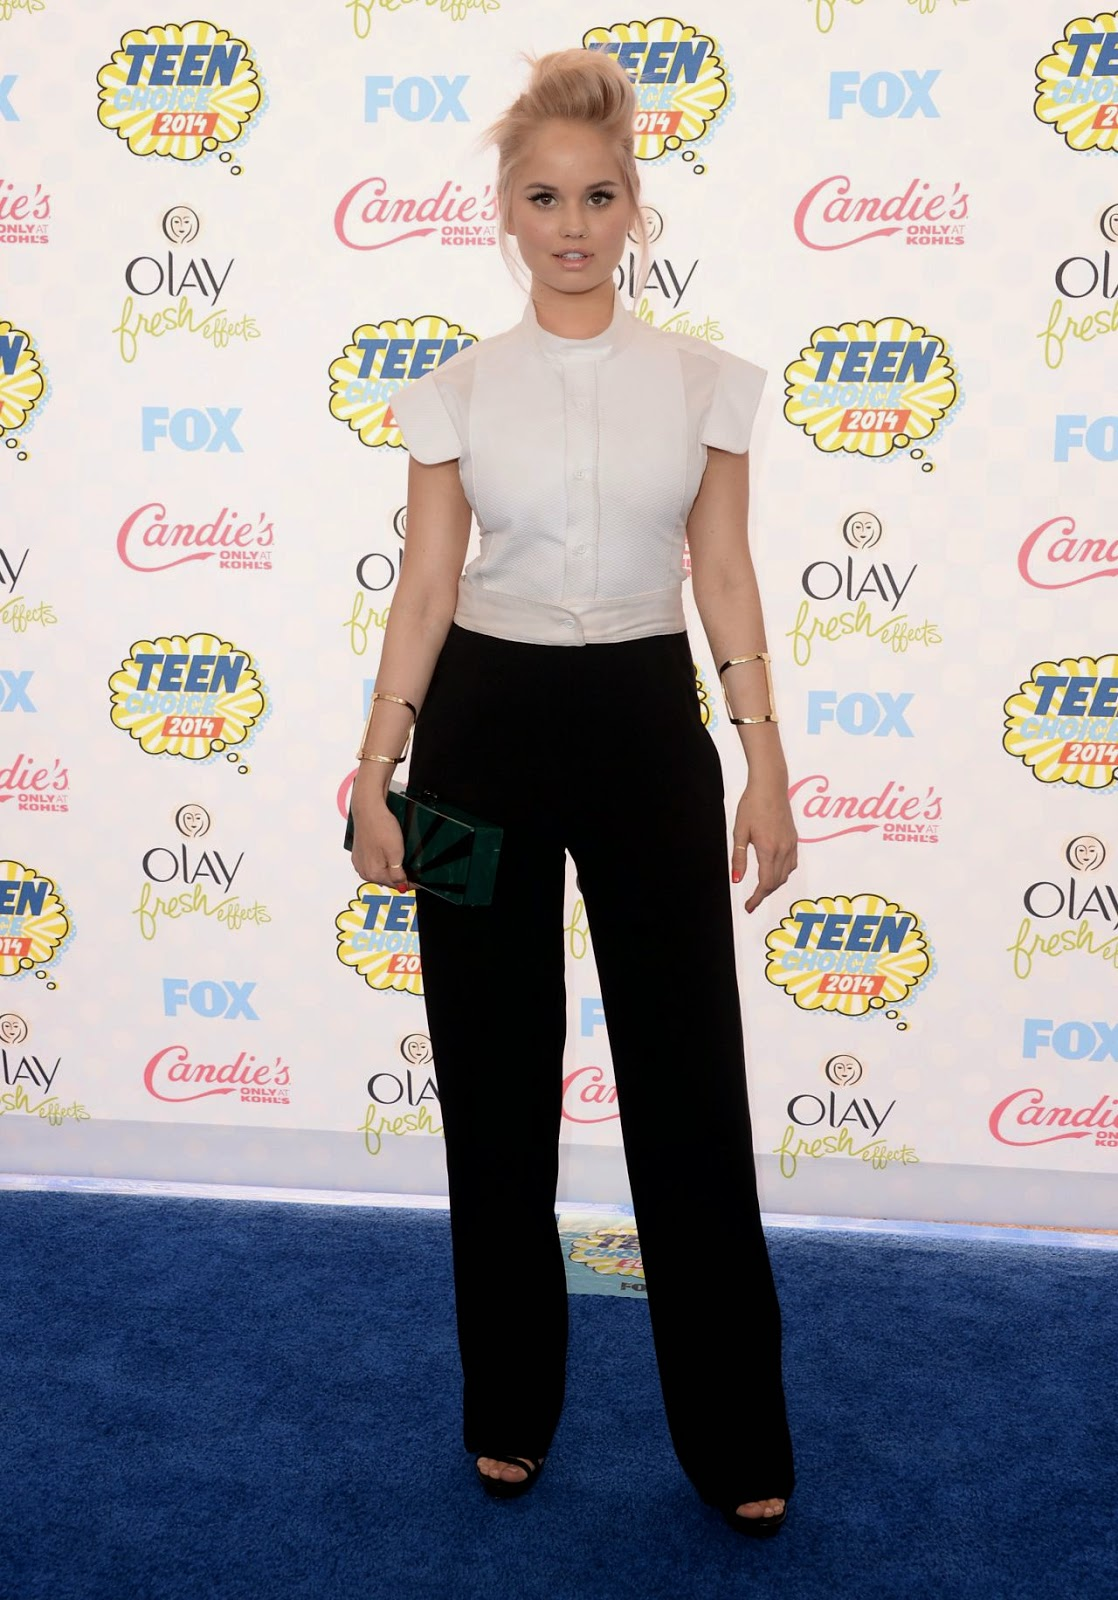 Debby Ryan arrives in a masculine inspired BCBG Max Azria outfit at the 2014 Teen Choice Awards